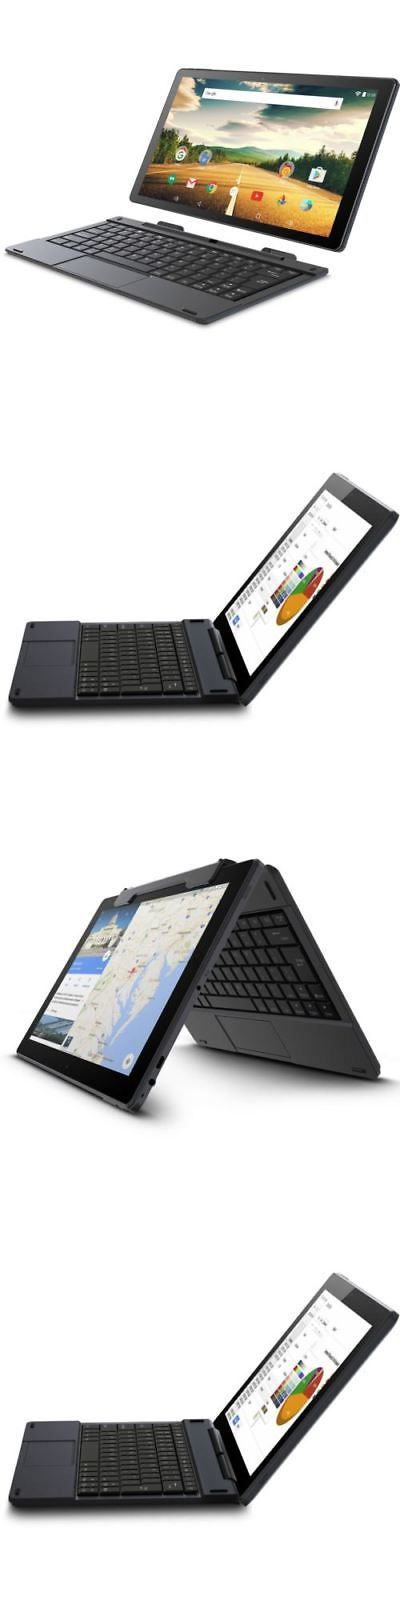 general for sale: 2 In 1 Tablet Laptop Pc 10 32Gb Android Os Intel Atom Quad Core Processor Wifi -> BUY IT NOW ONLY: $99.96 on eBay!